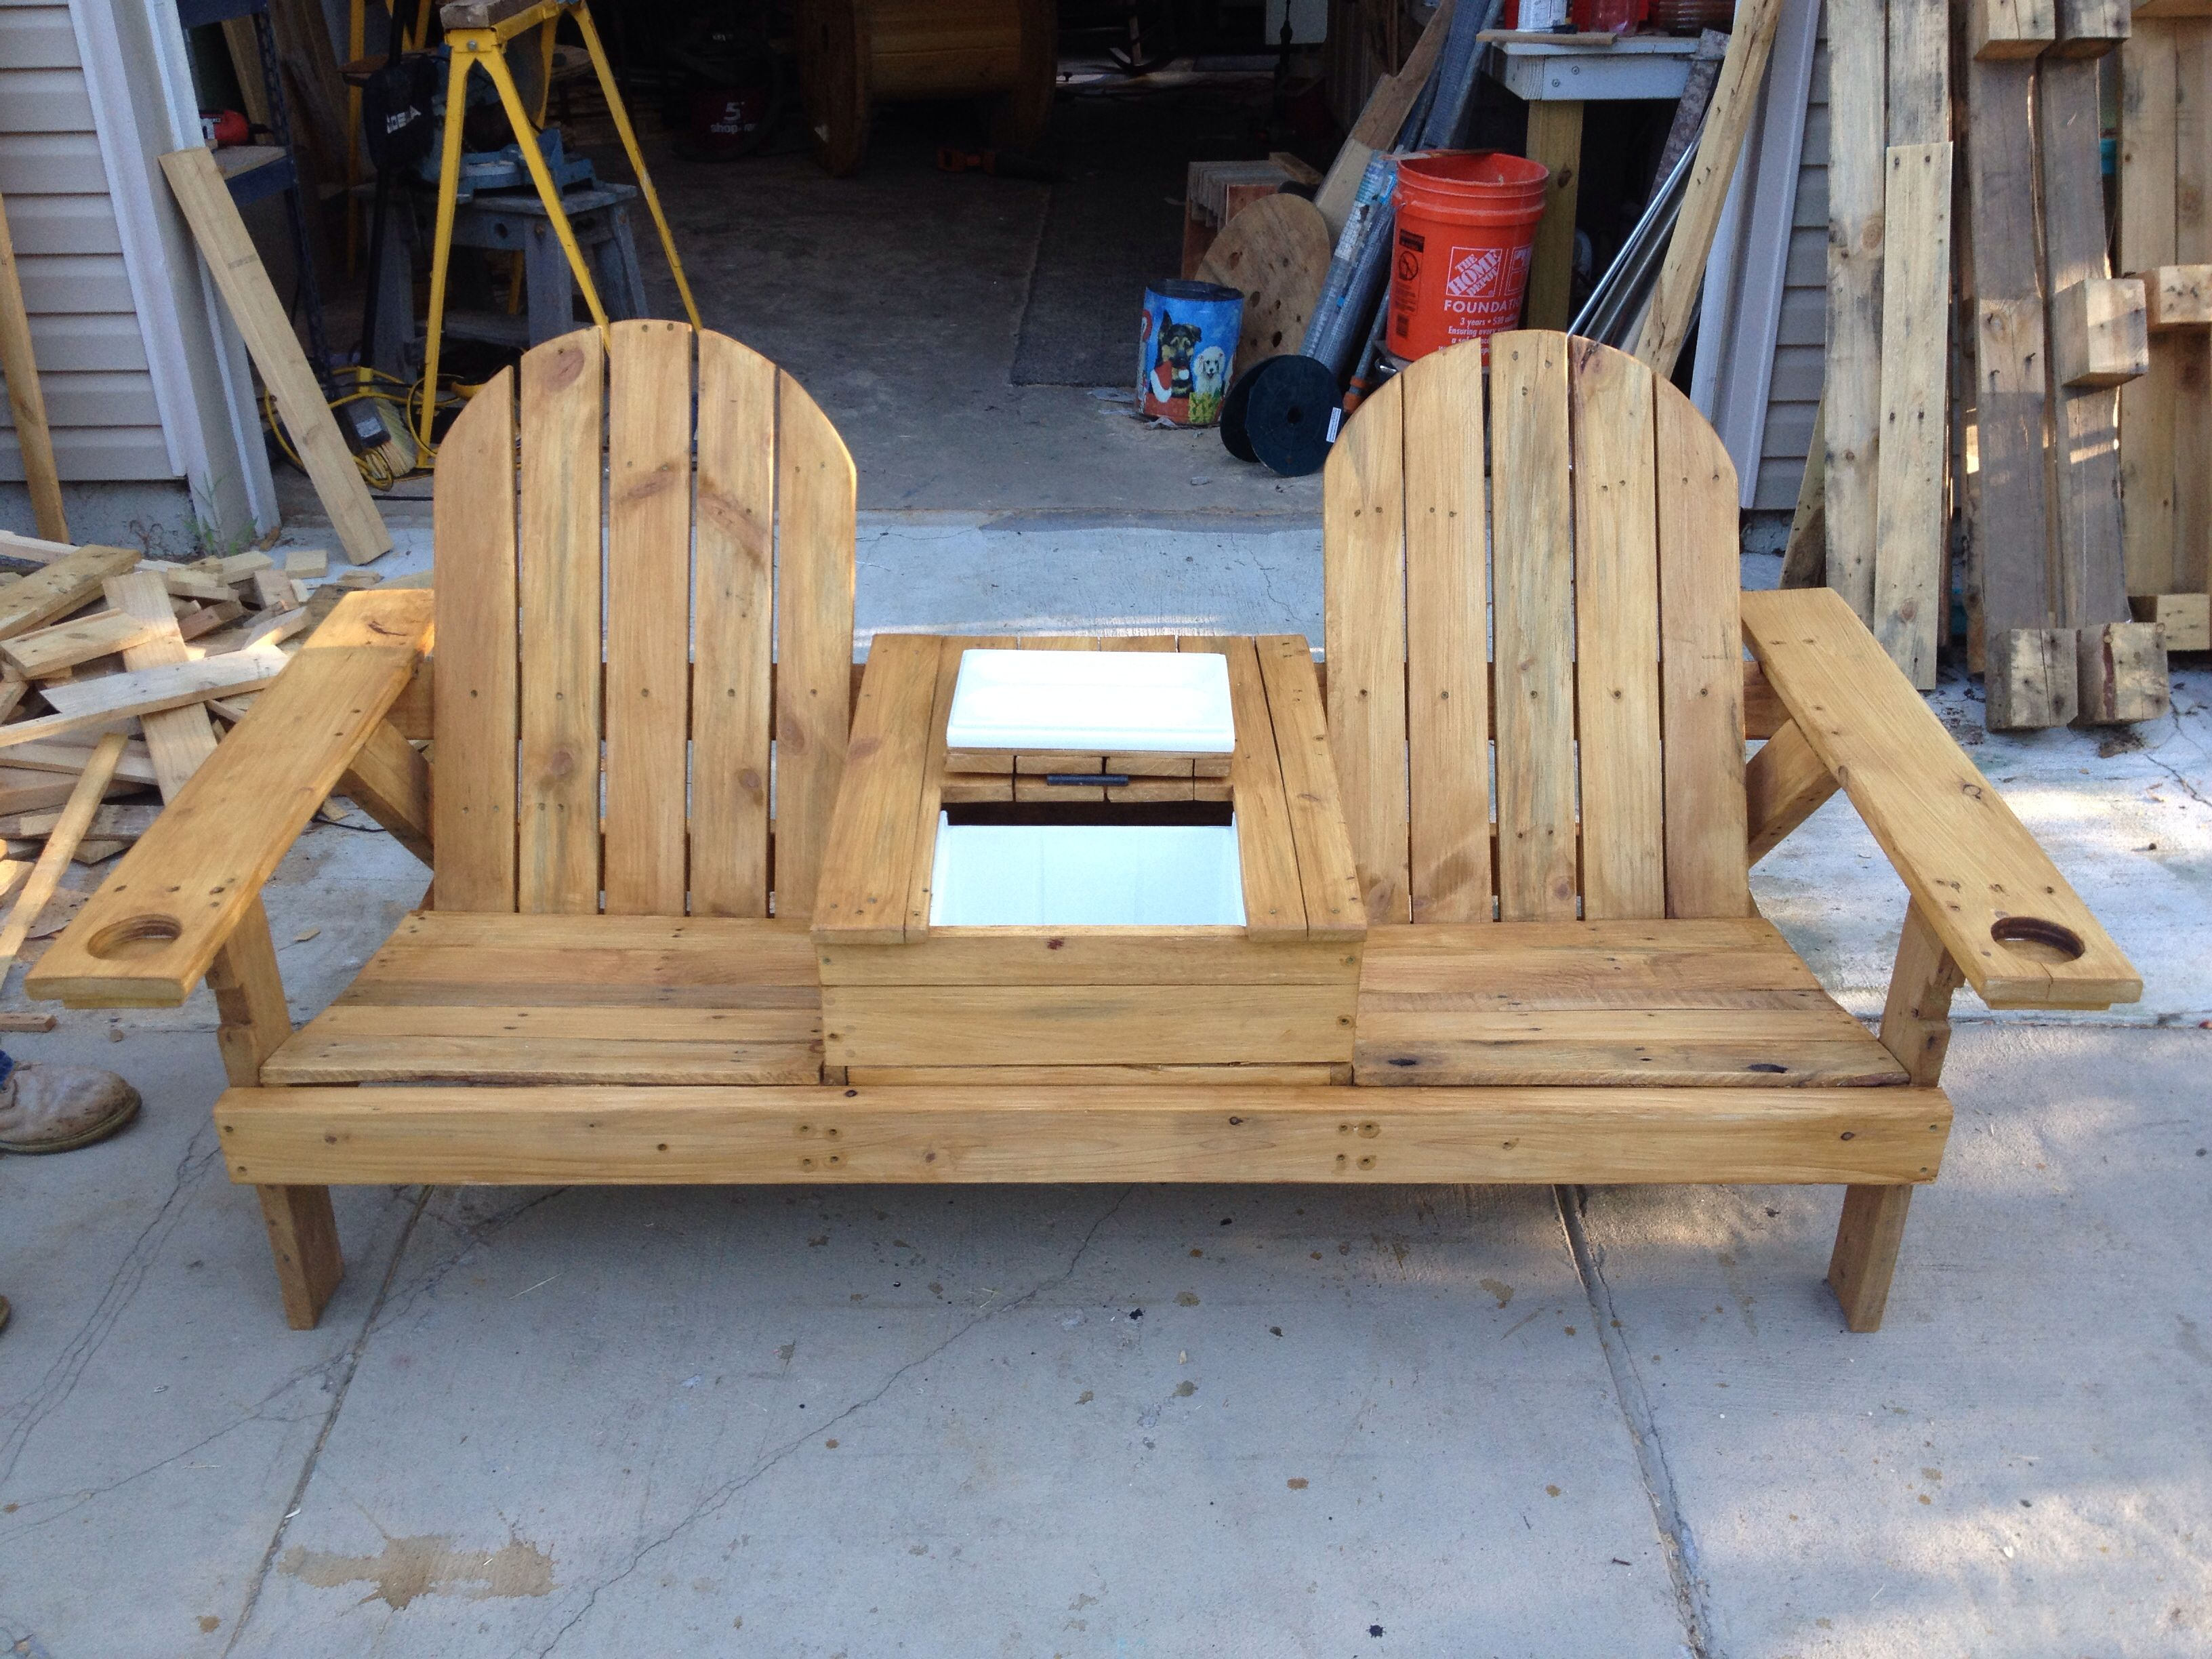 Pallet wood bench with cooler